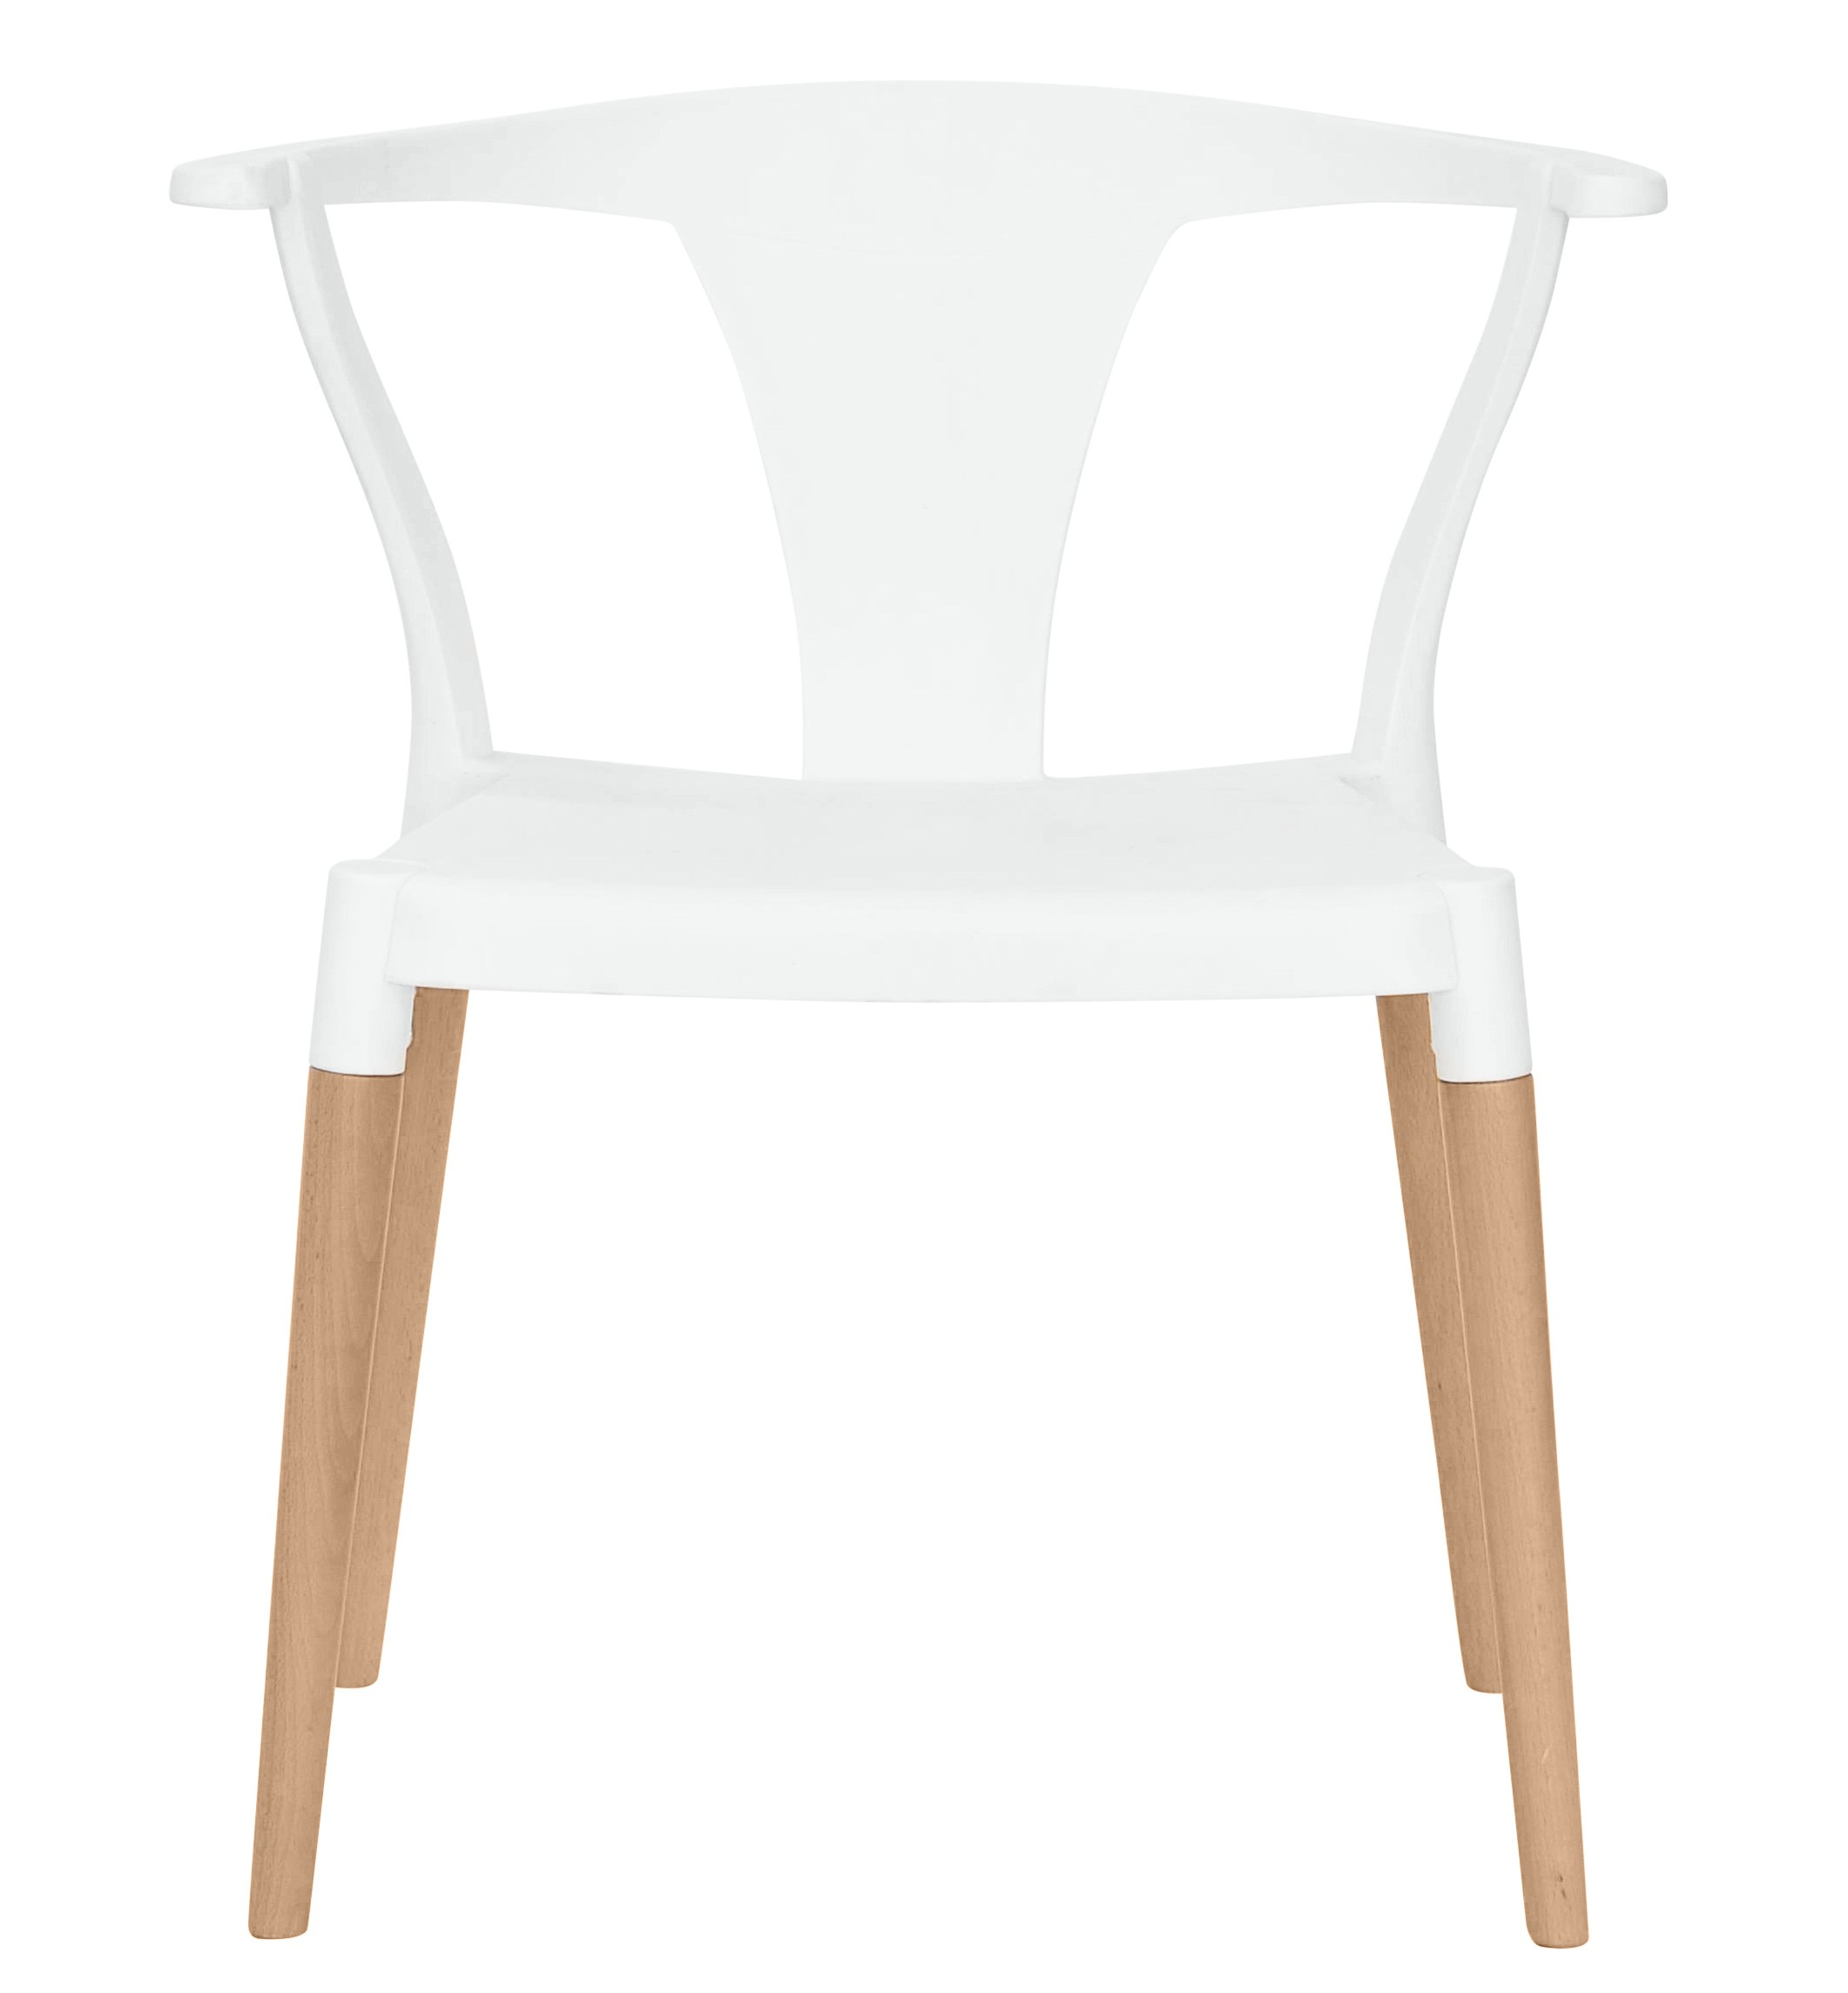 Superb img of Icon Series White Modern Accent Dining Arm Chair Beech Wood Legs with #926239 color and 2122x2289 pixels